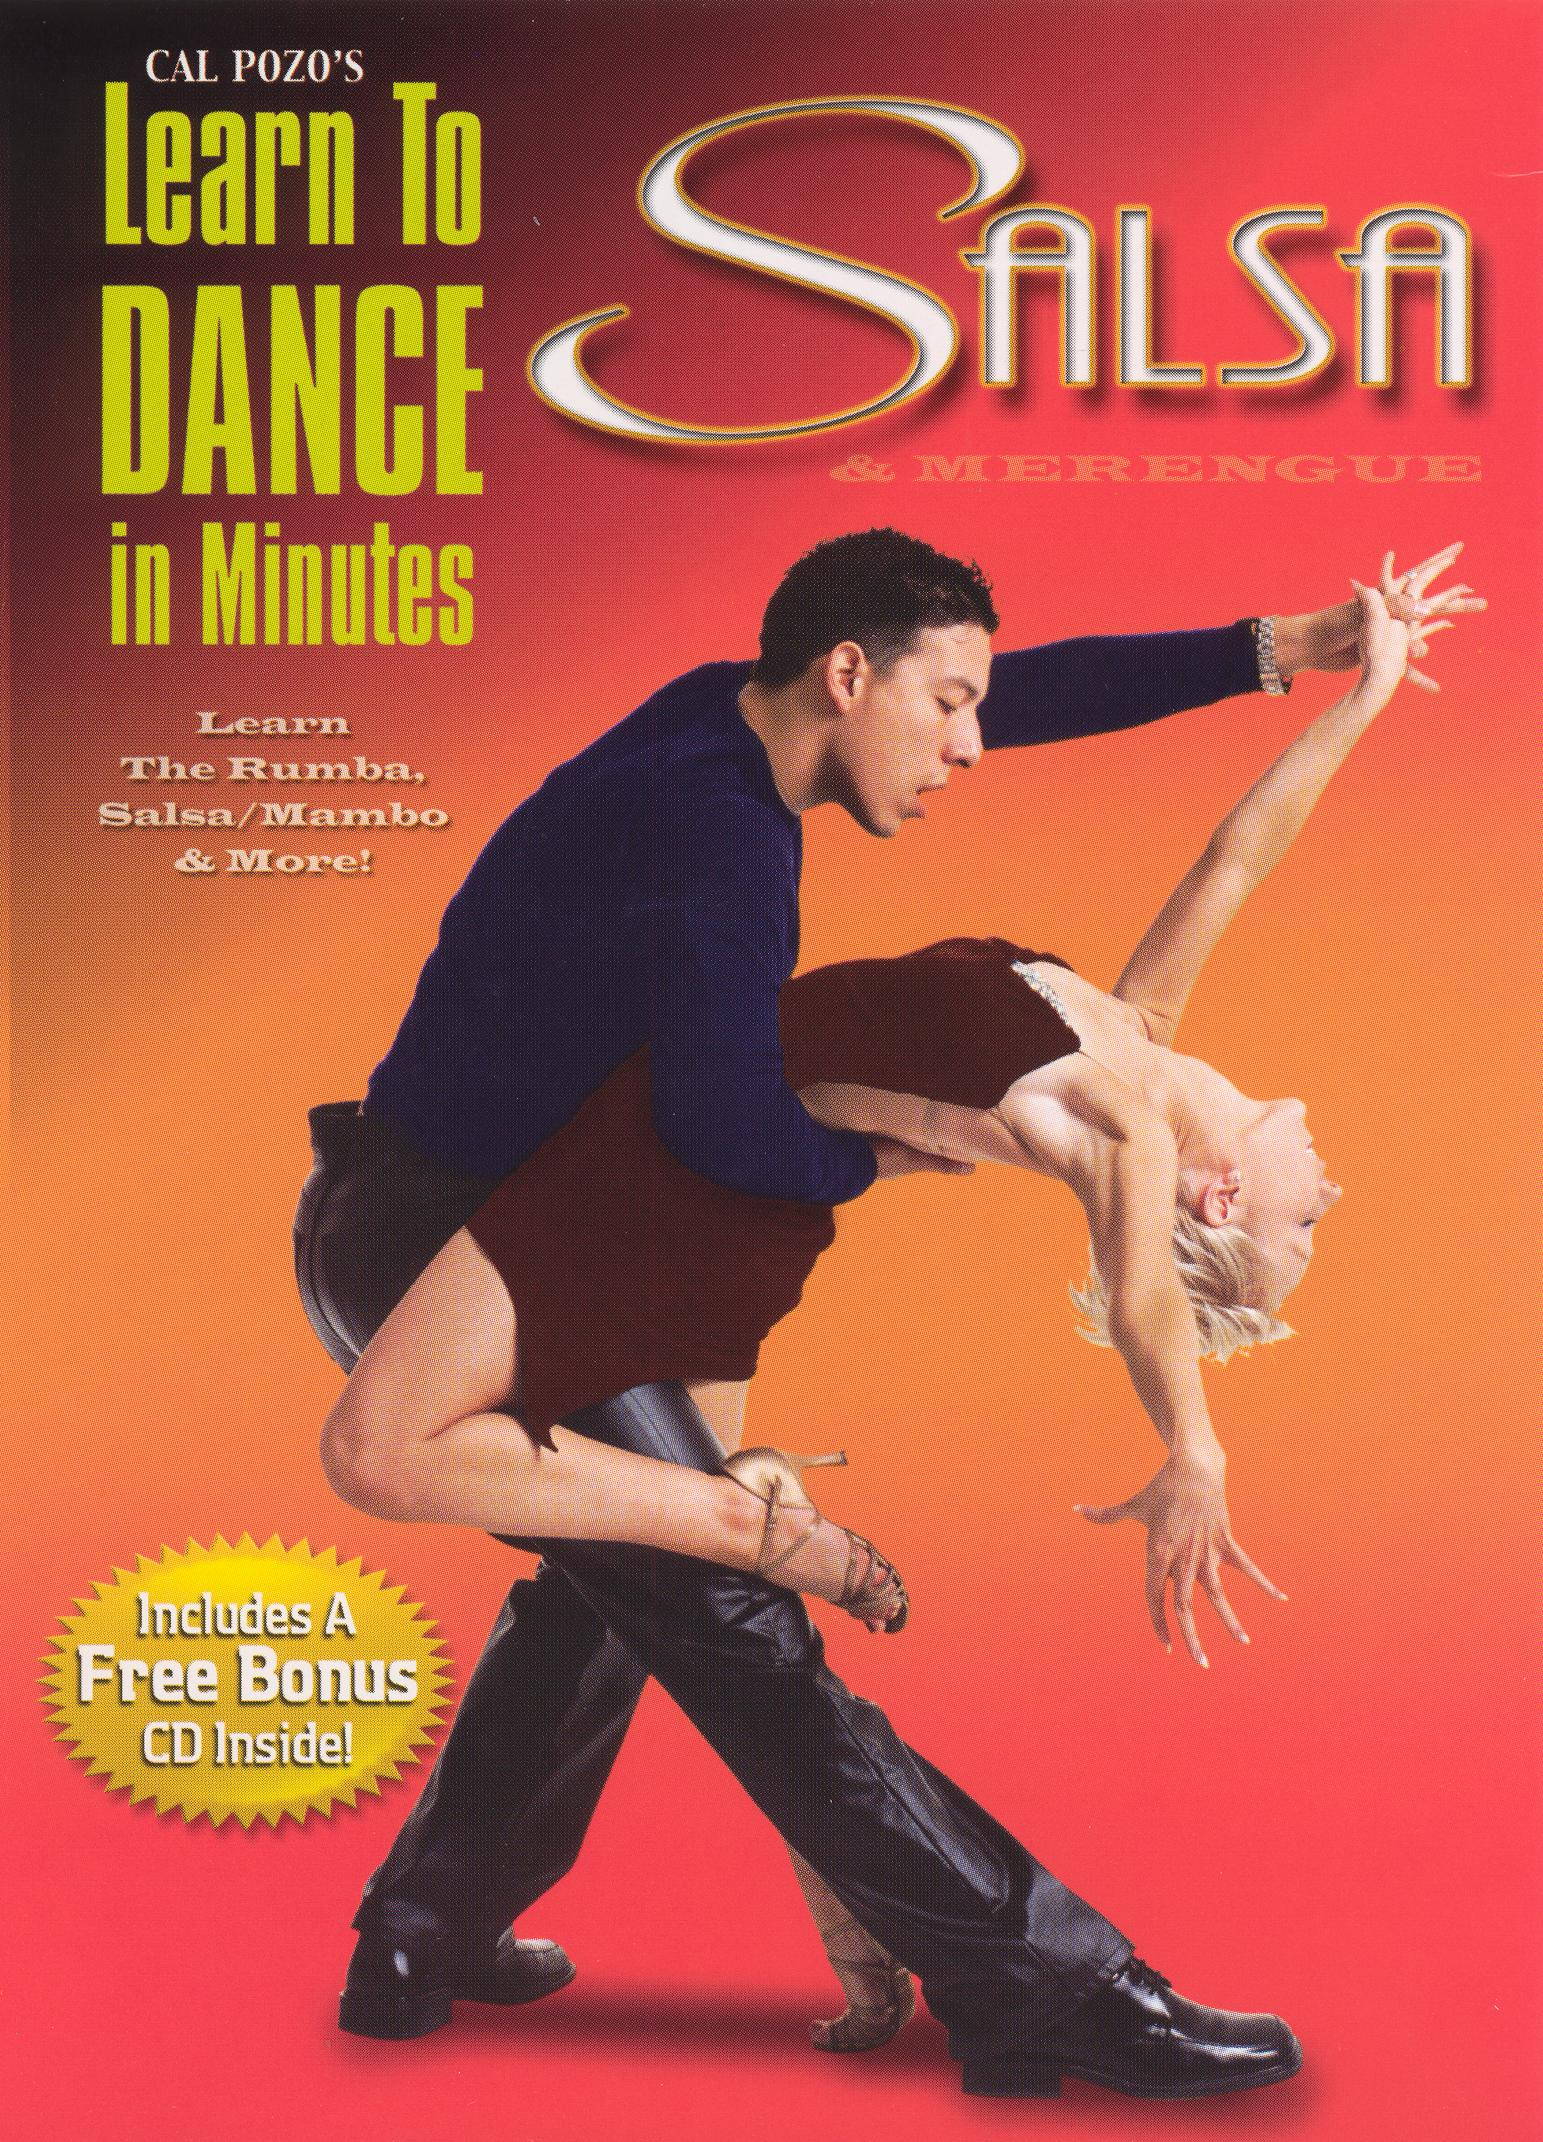 Cal Pozo's Learn to Dance in Minutes: Salsa and Merengue